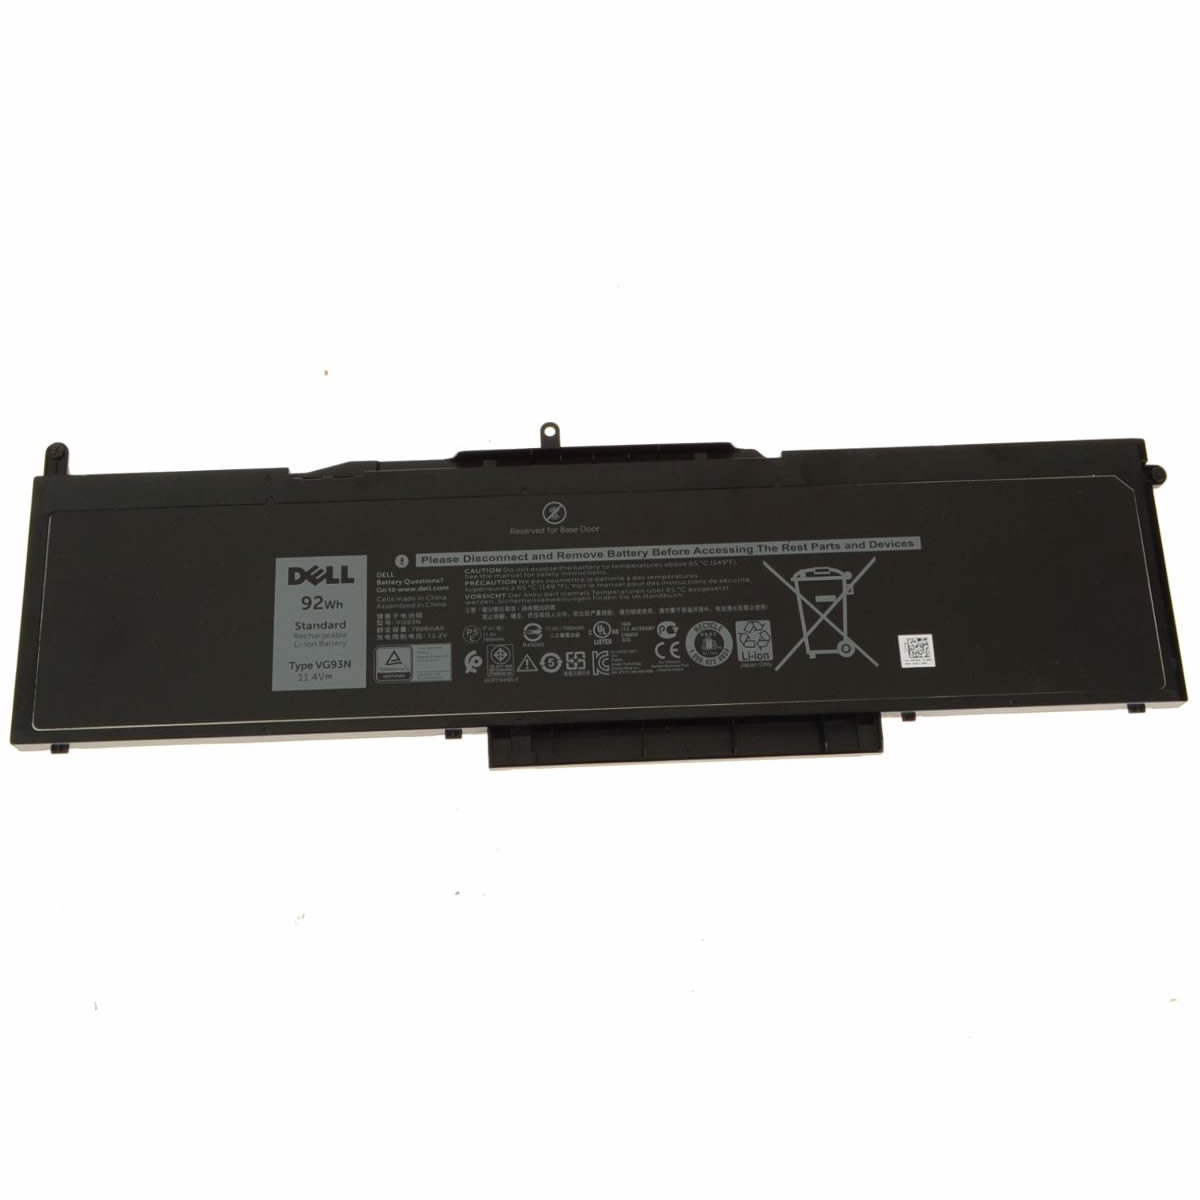 Dell VG93N WFWKK NY5PG batterie originale 11.4V 7666mAh, 92Wh pour ordinateur portable Dell Latitude 5580, Precision 15 3520 séries